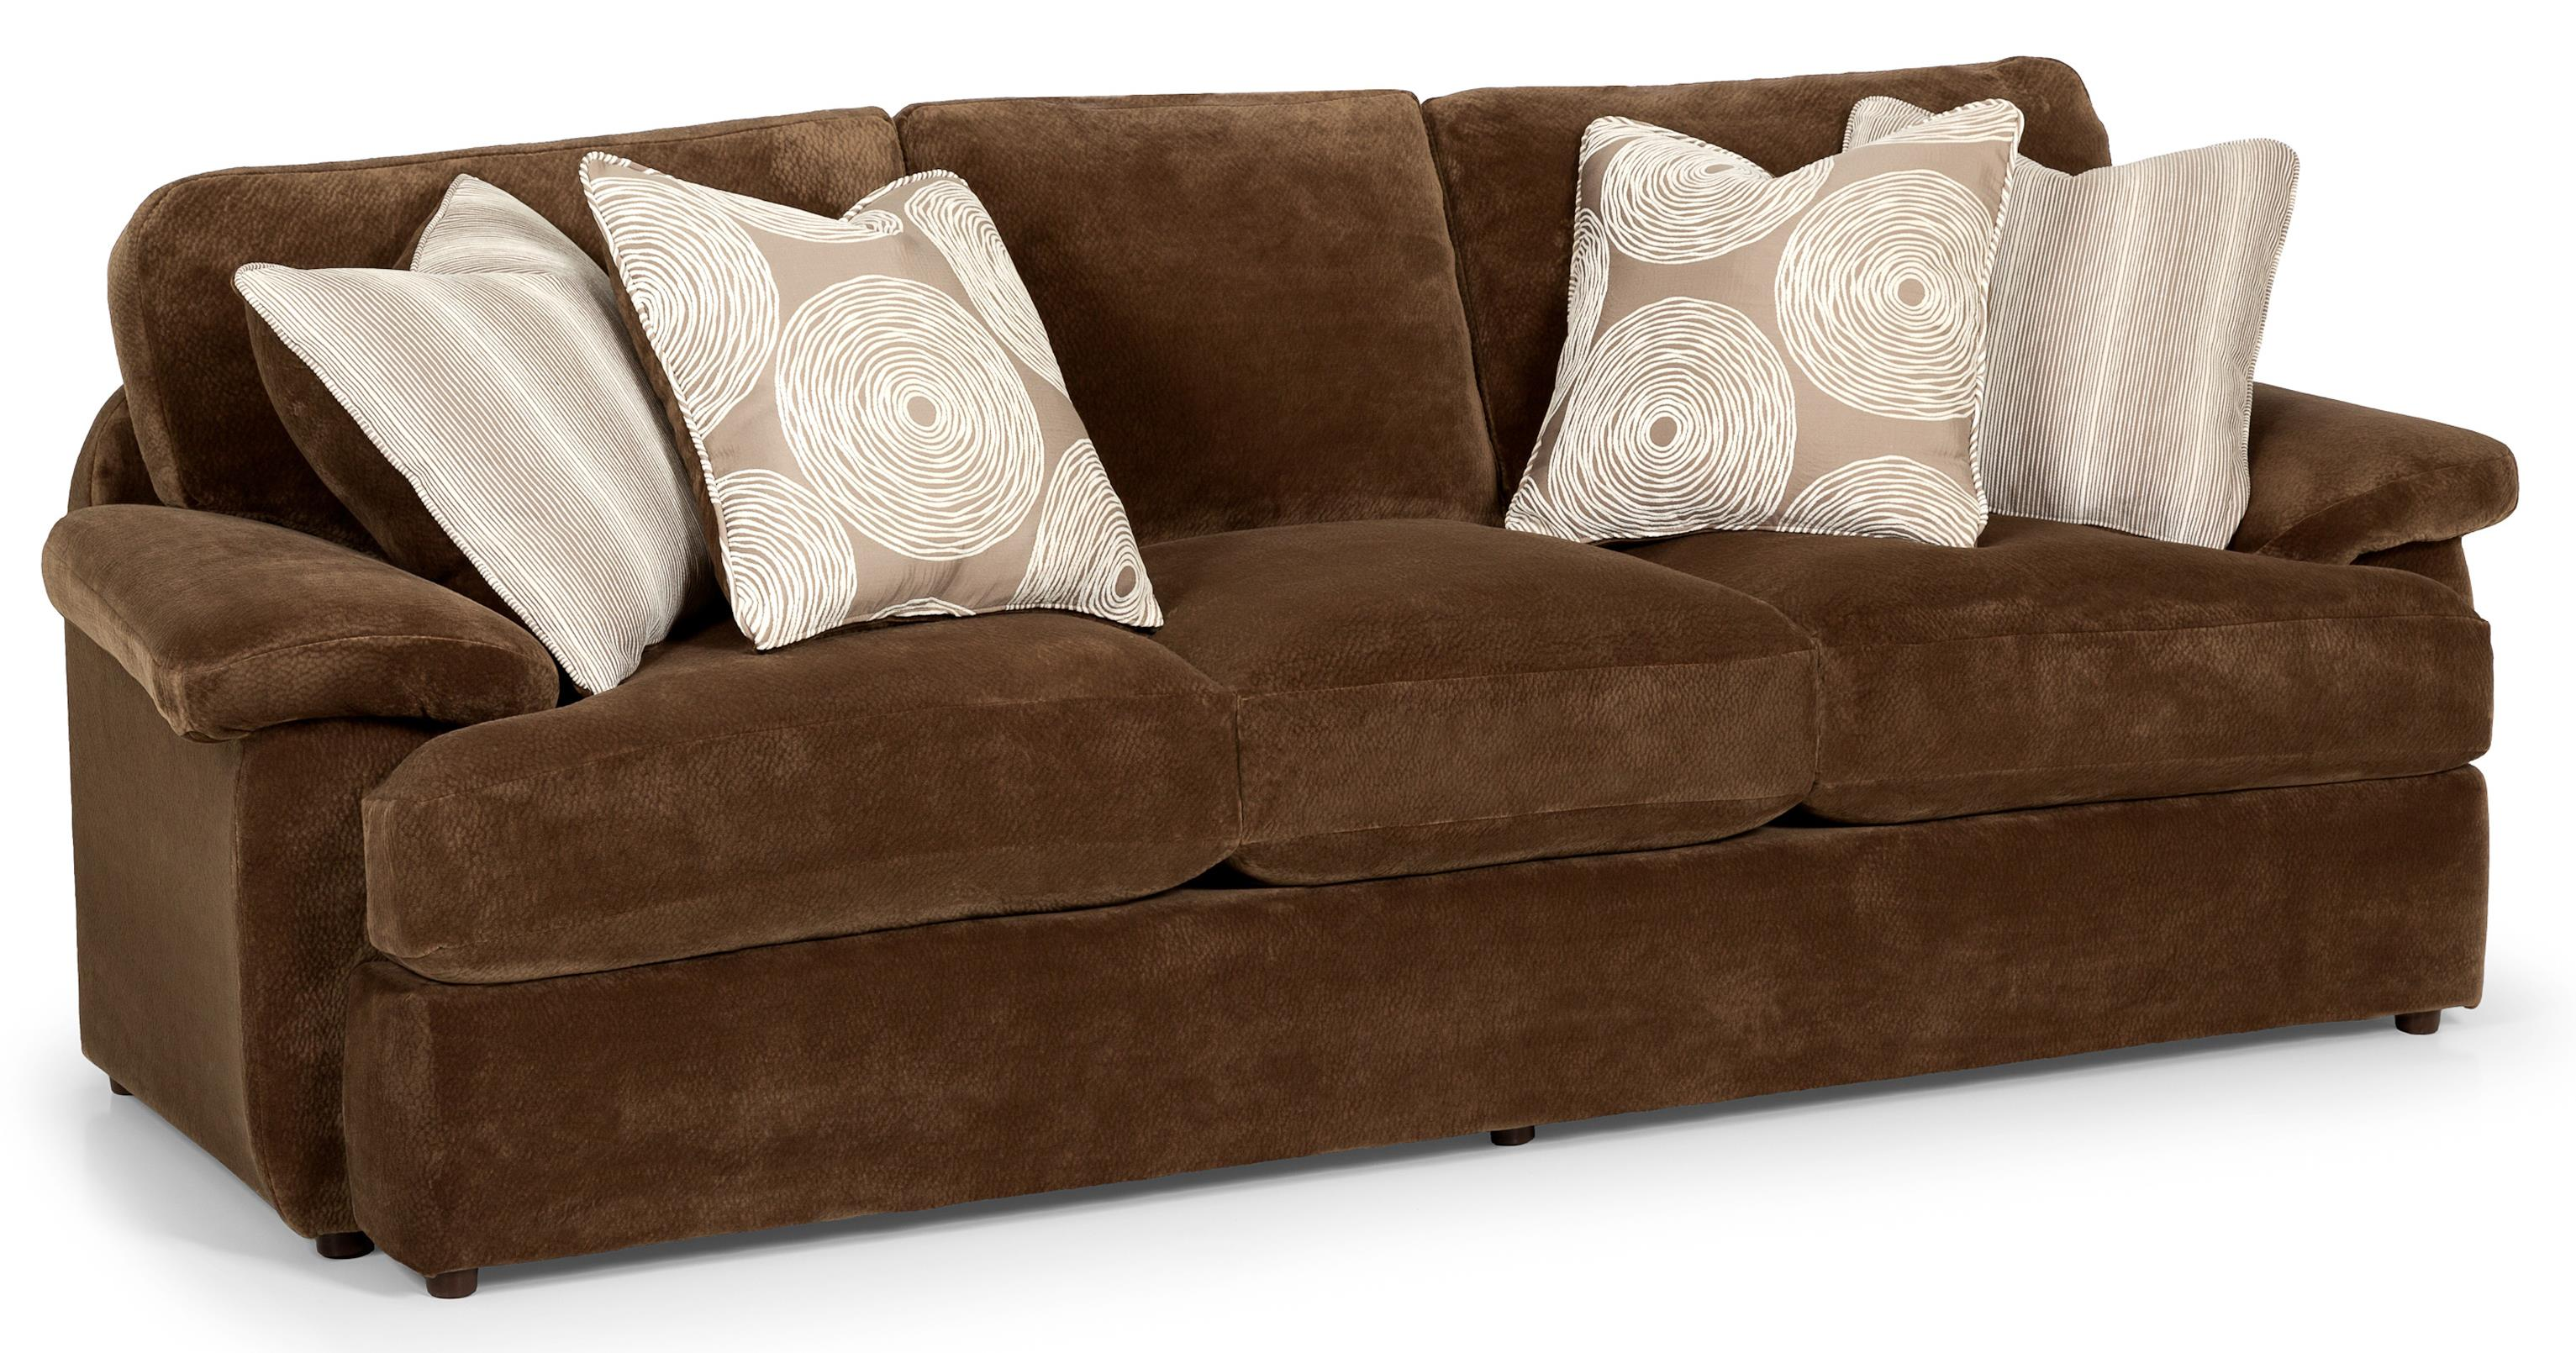 Stanton 186 3 Over 3 Sofa - Item Number: 186-01